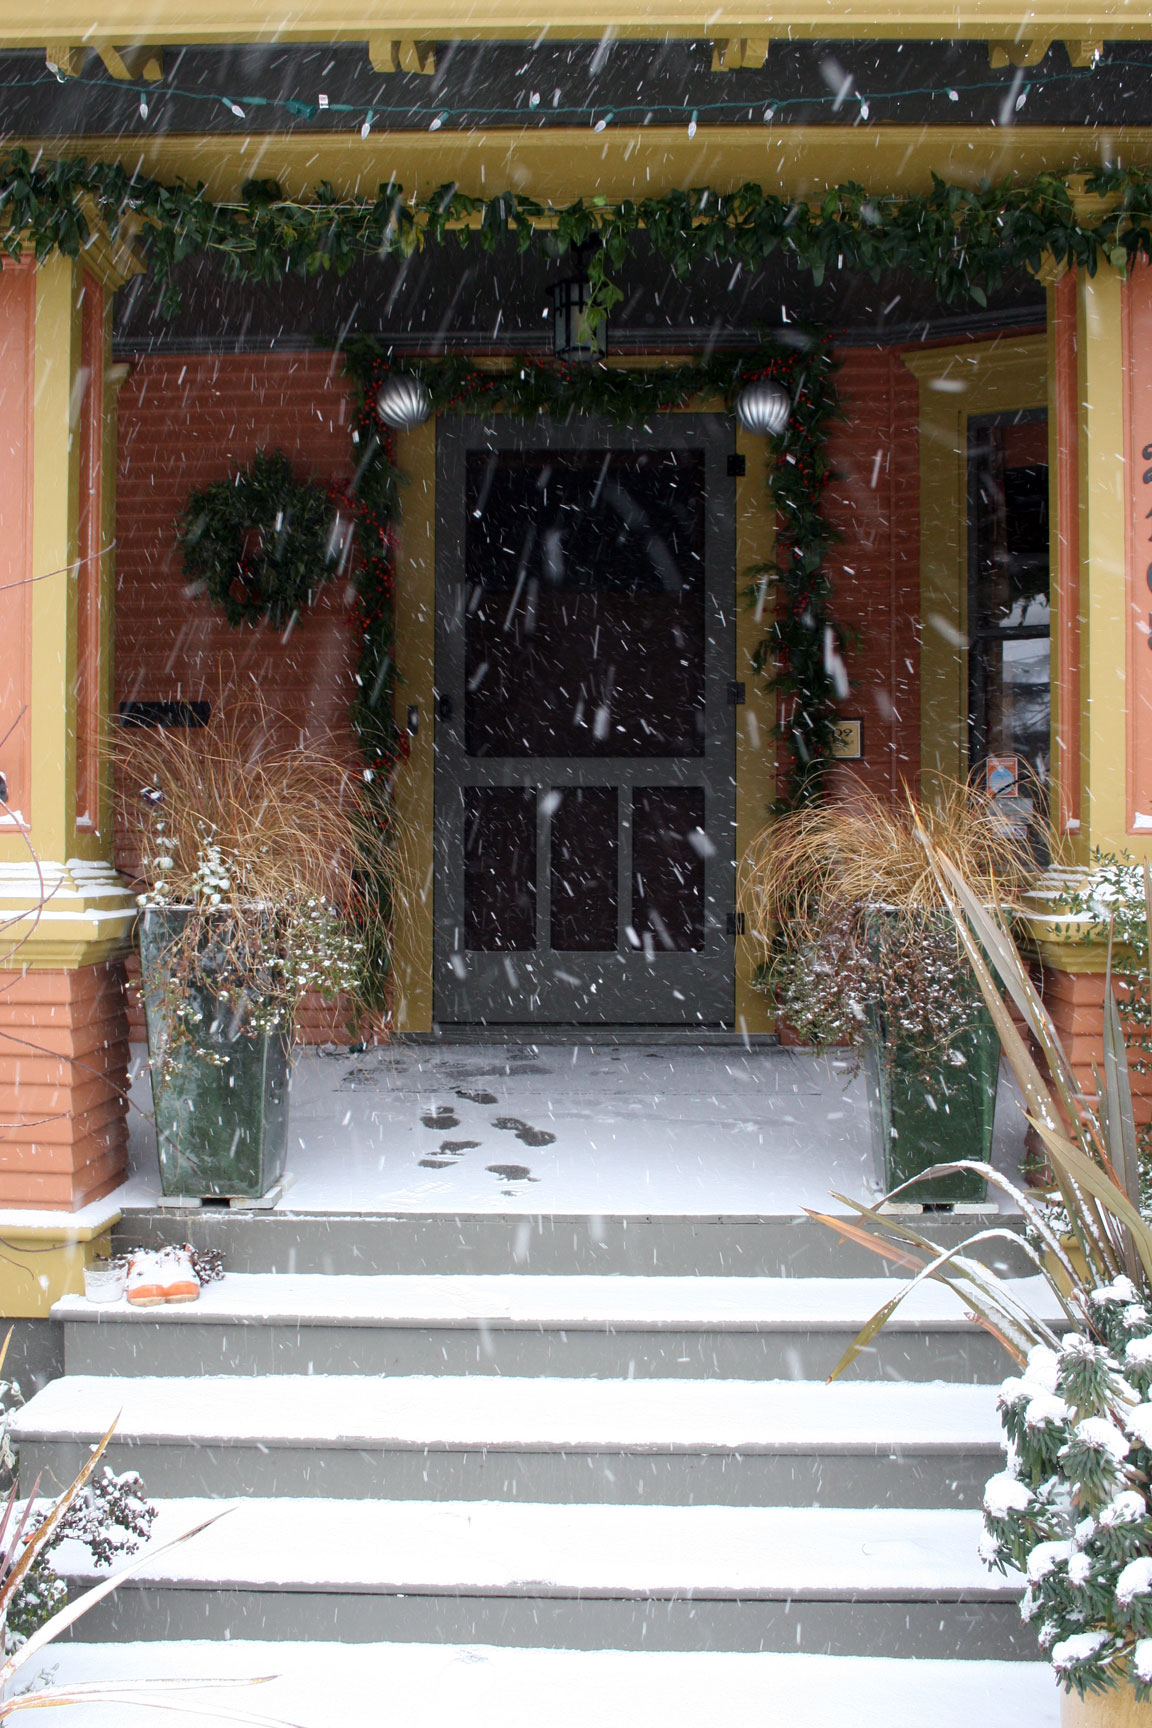 Garrison hullinger, christmas decorations outside, snow on front porch